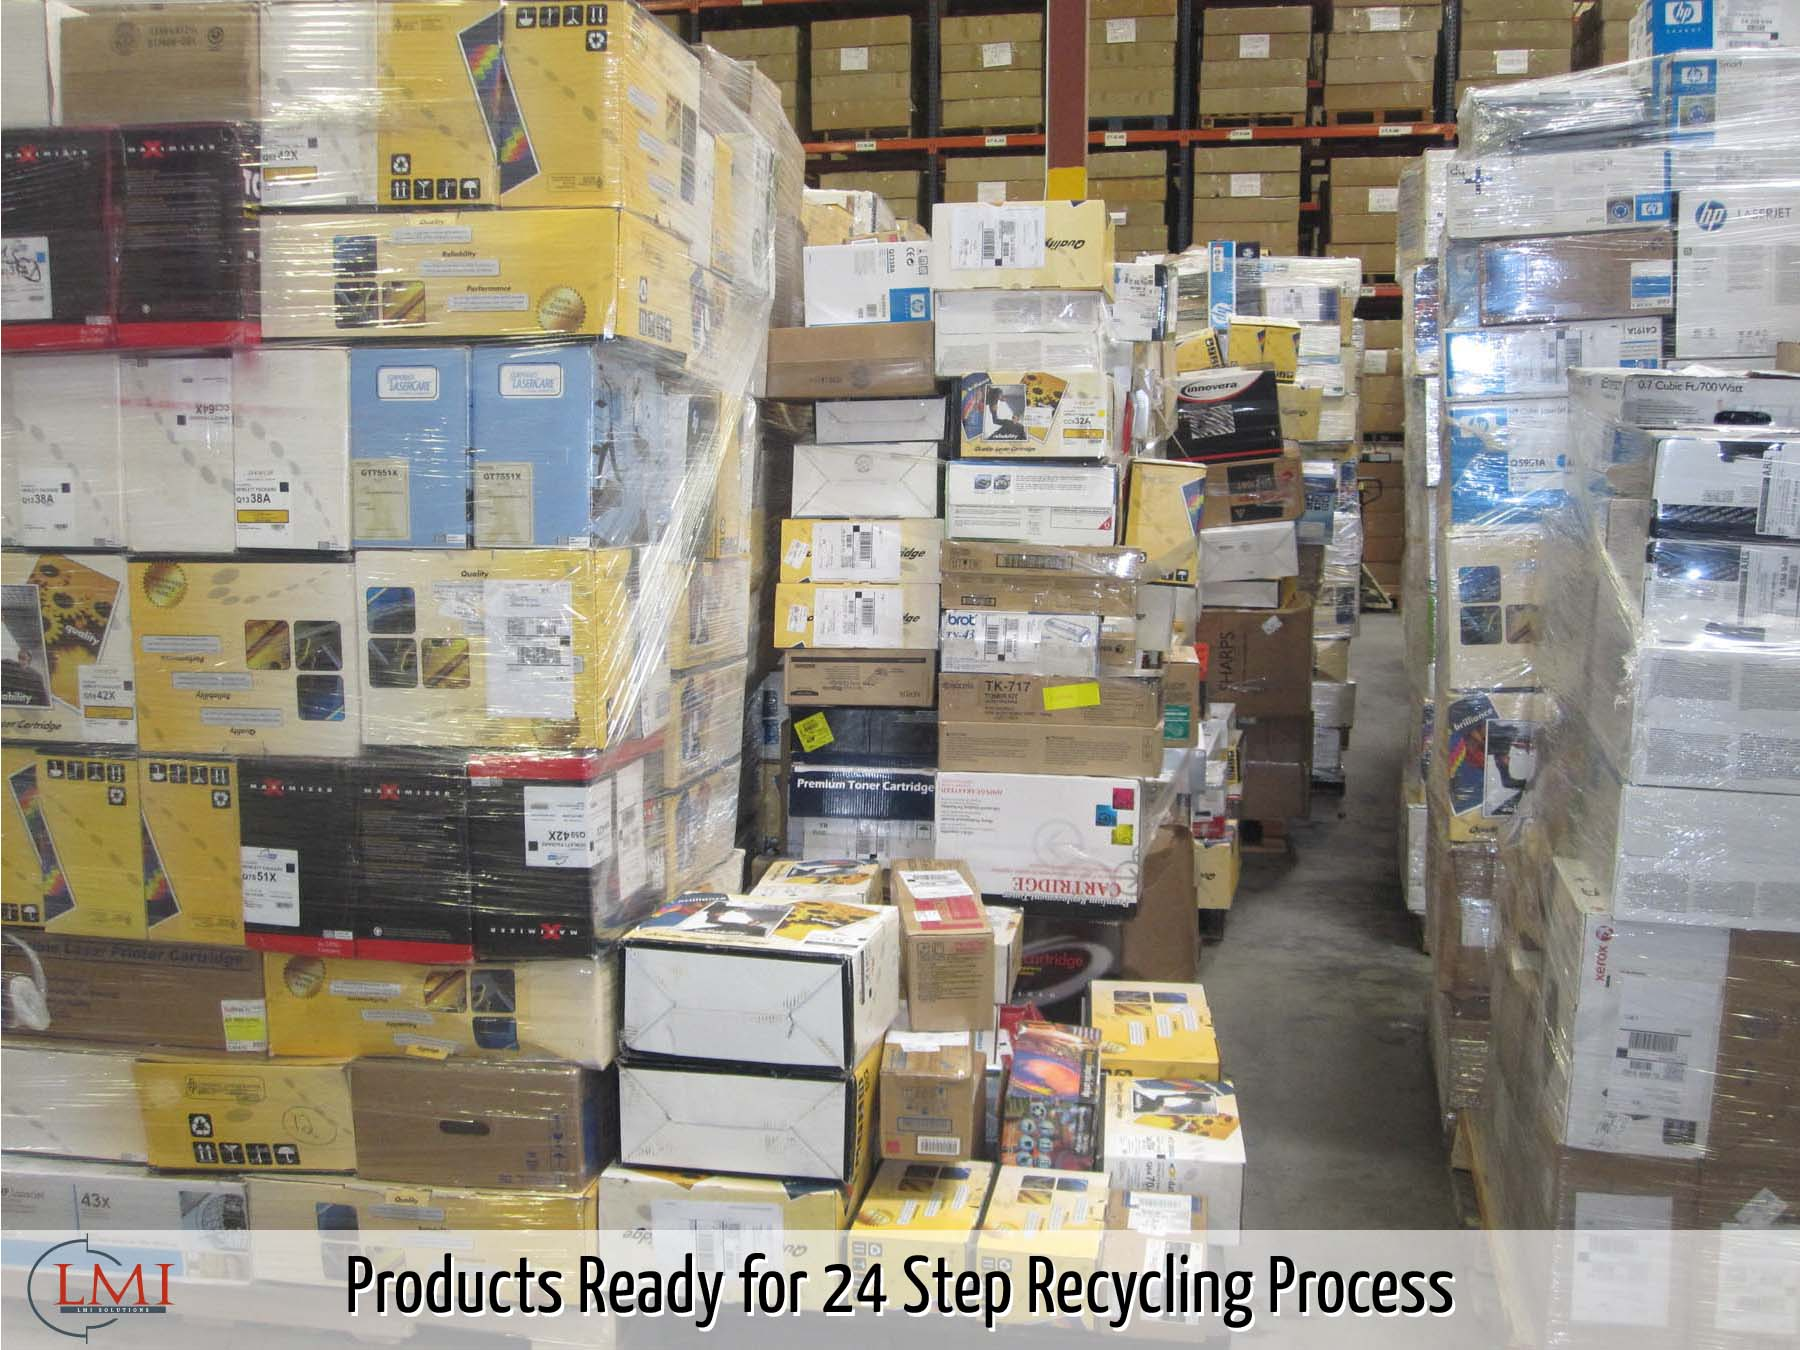 Products Ready for 24 Step Recycling Process